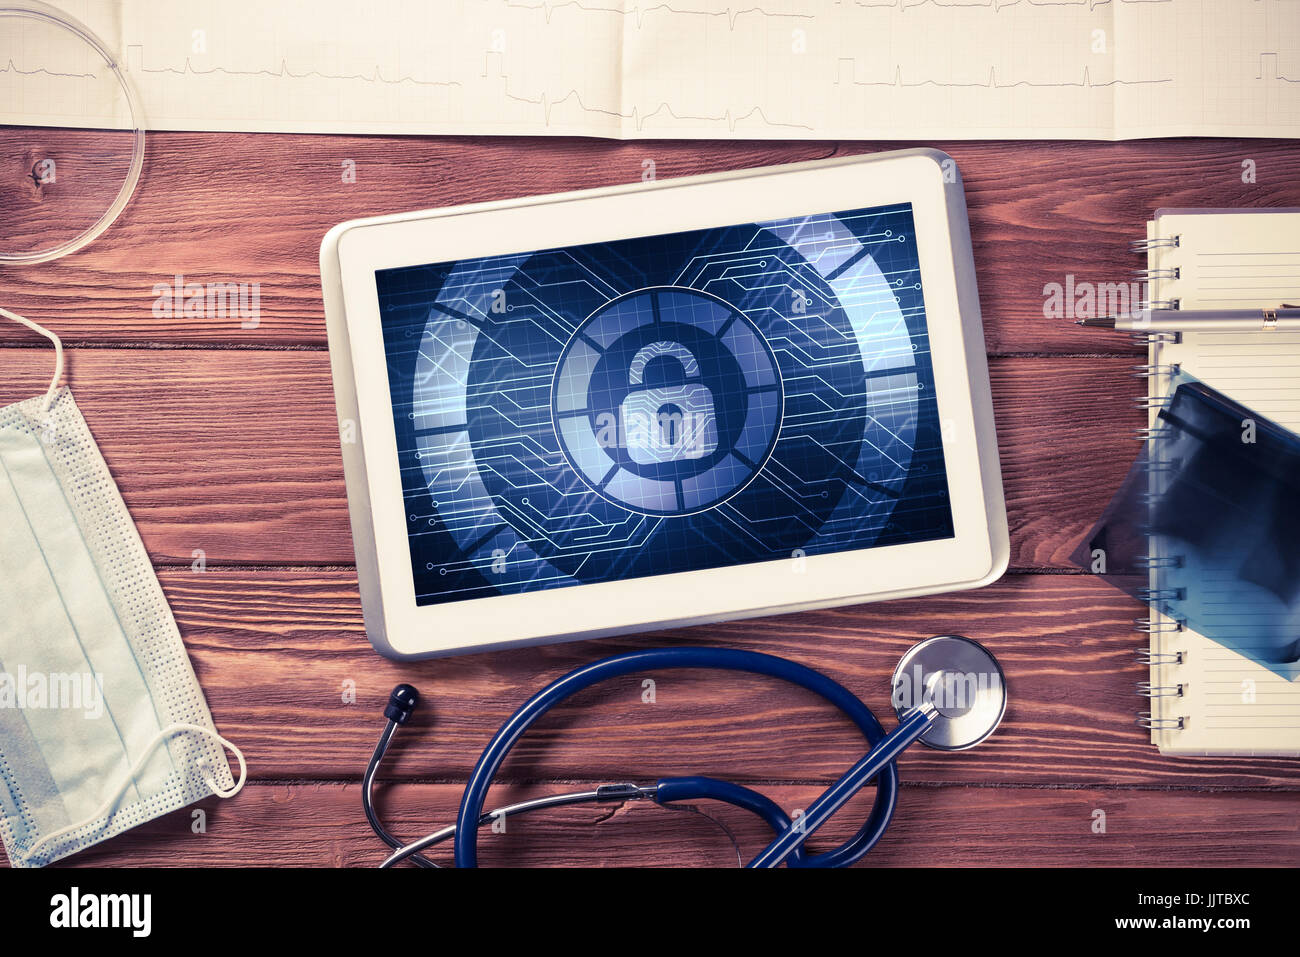 Web Security And Technology Concept With Tablet Pc On Wooden Tab